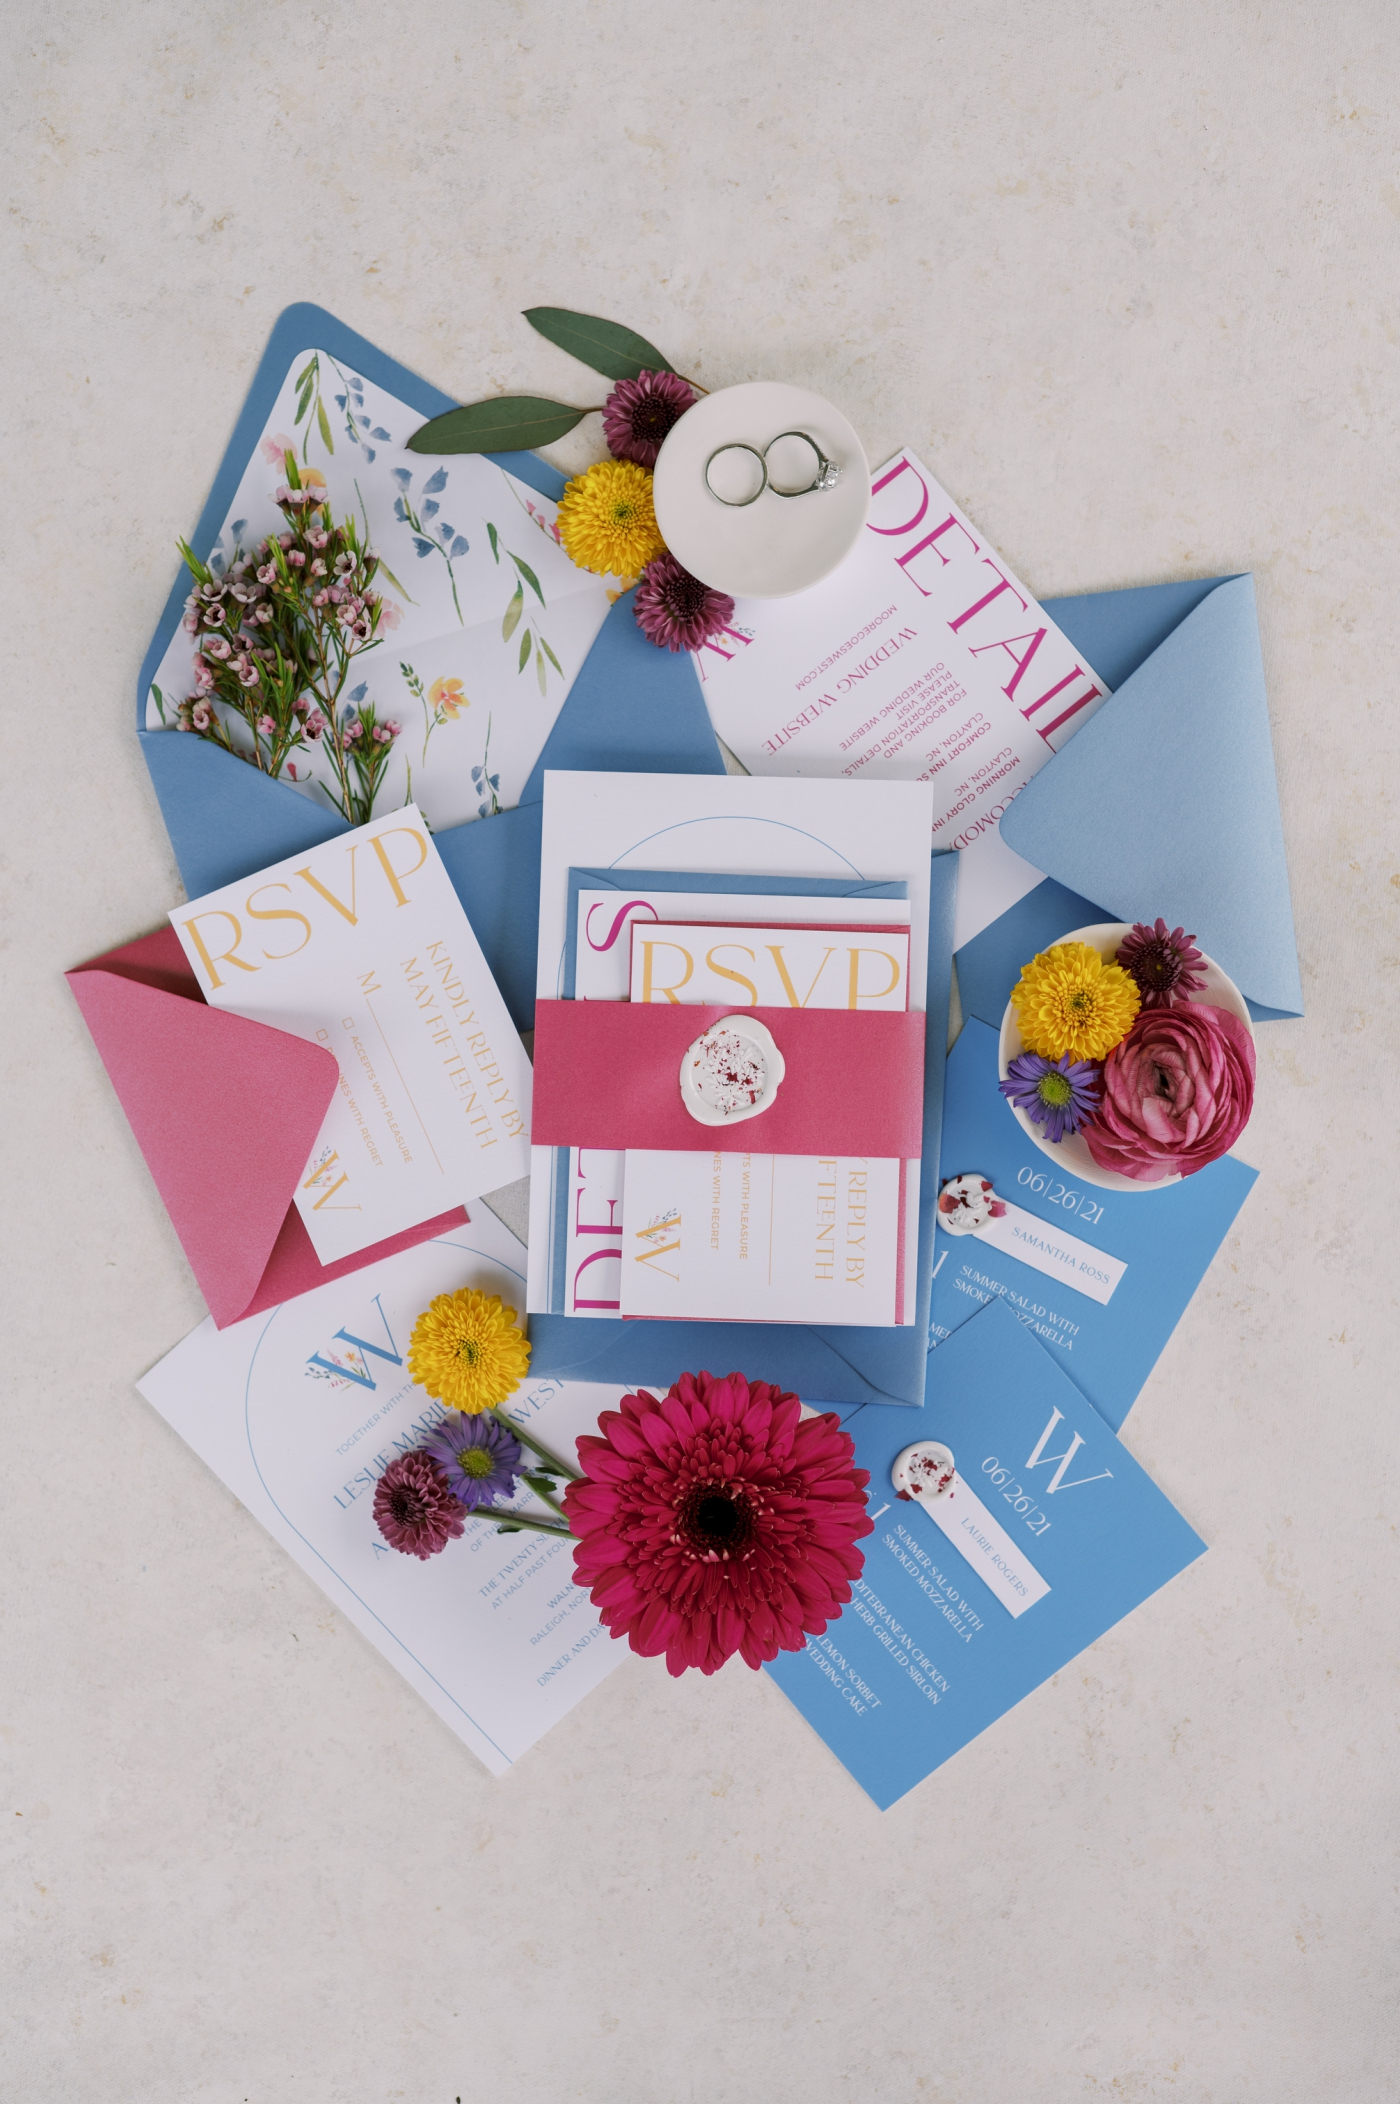 Unique ways to add details to your wedding invitations